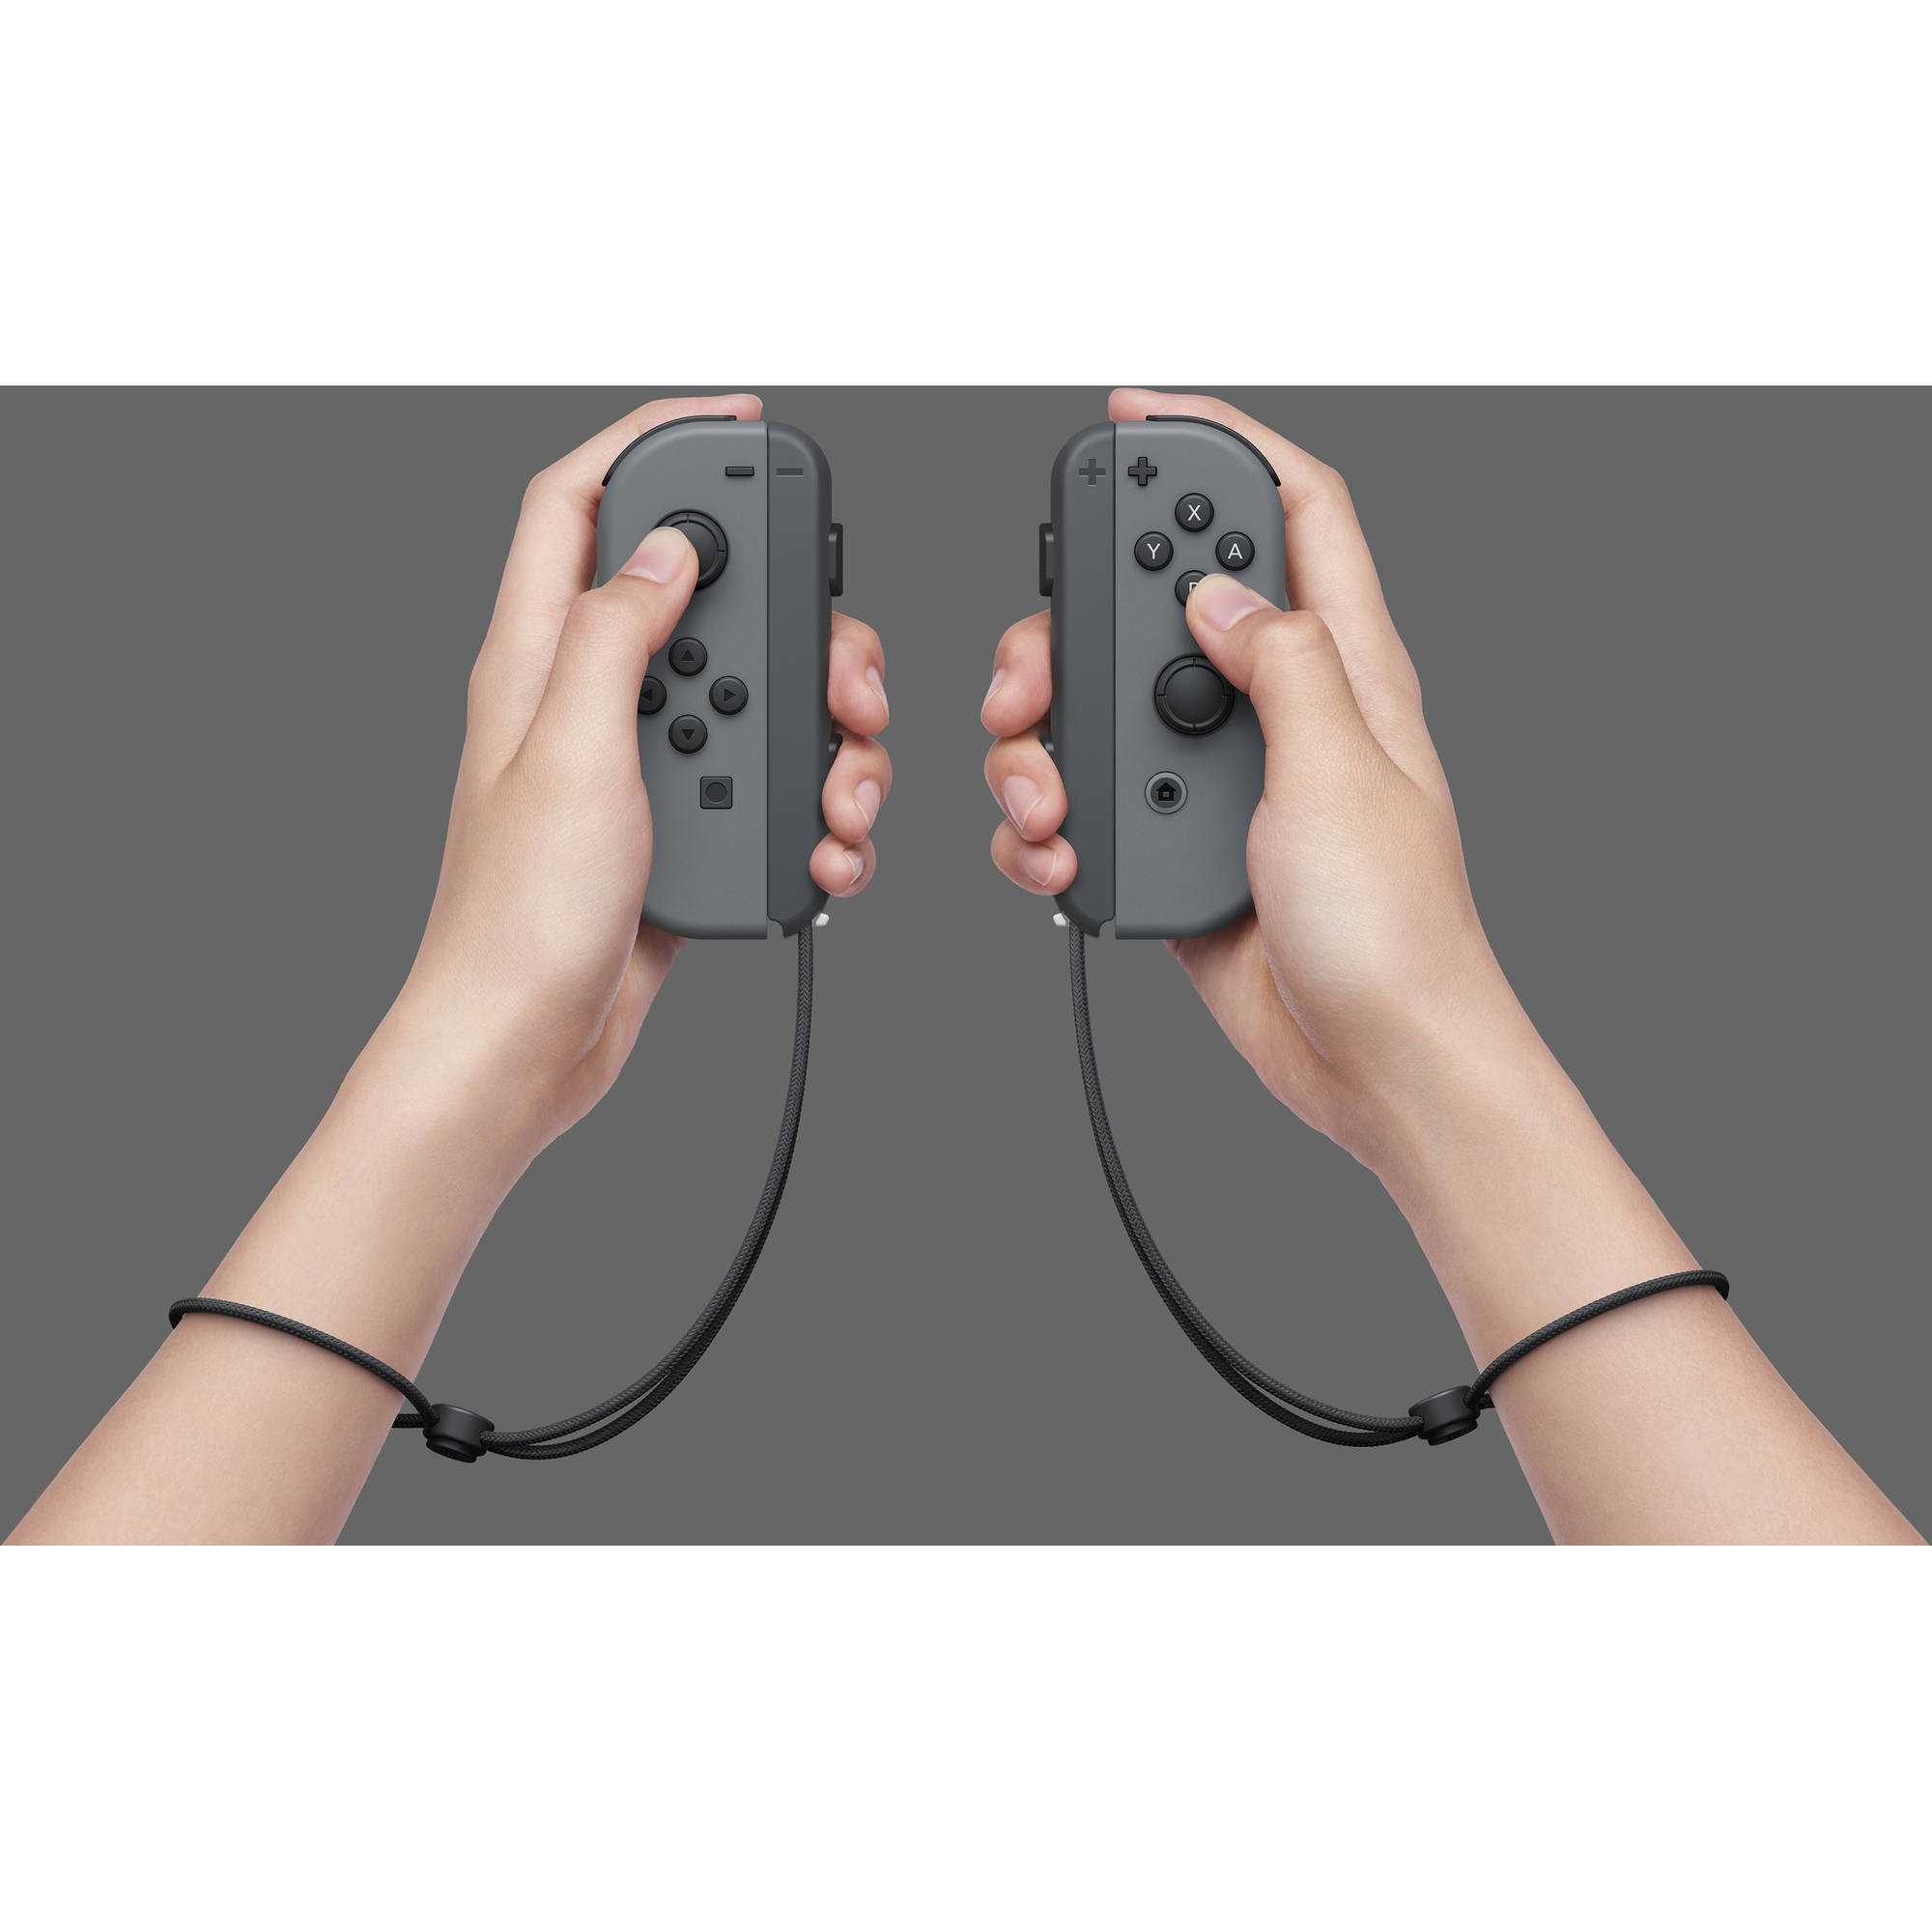 Nintendo Switch with Gray Controllers (2019)